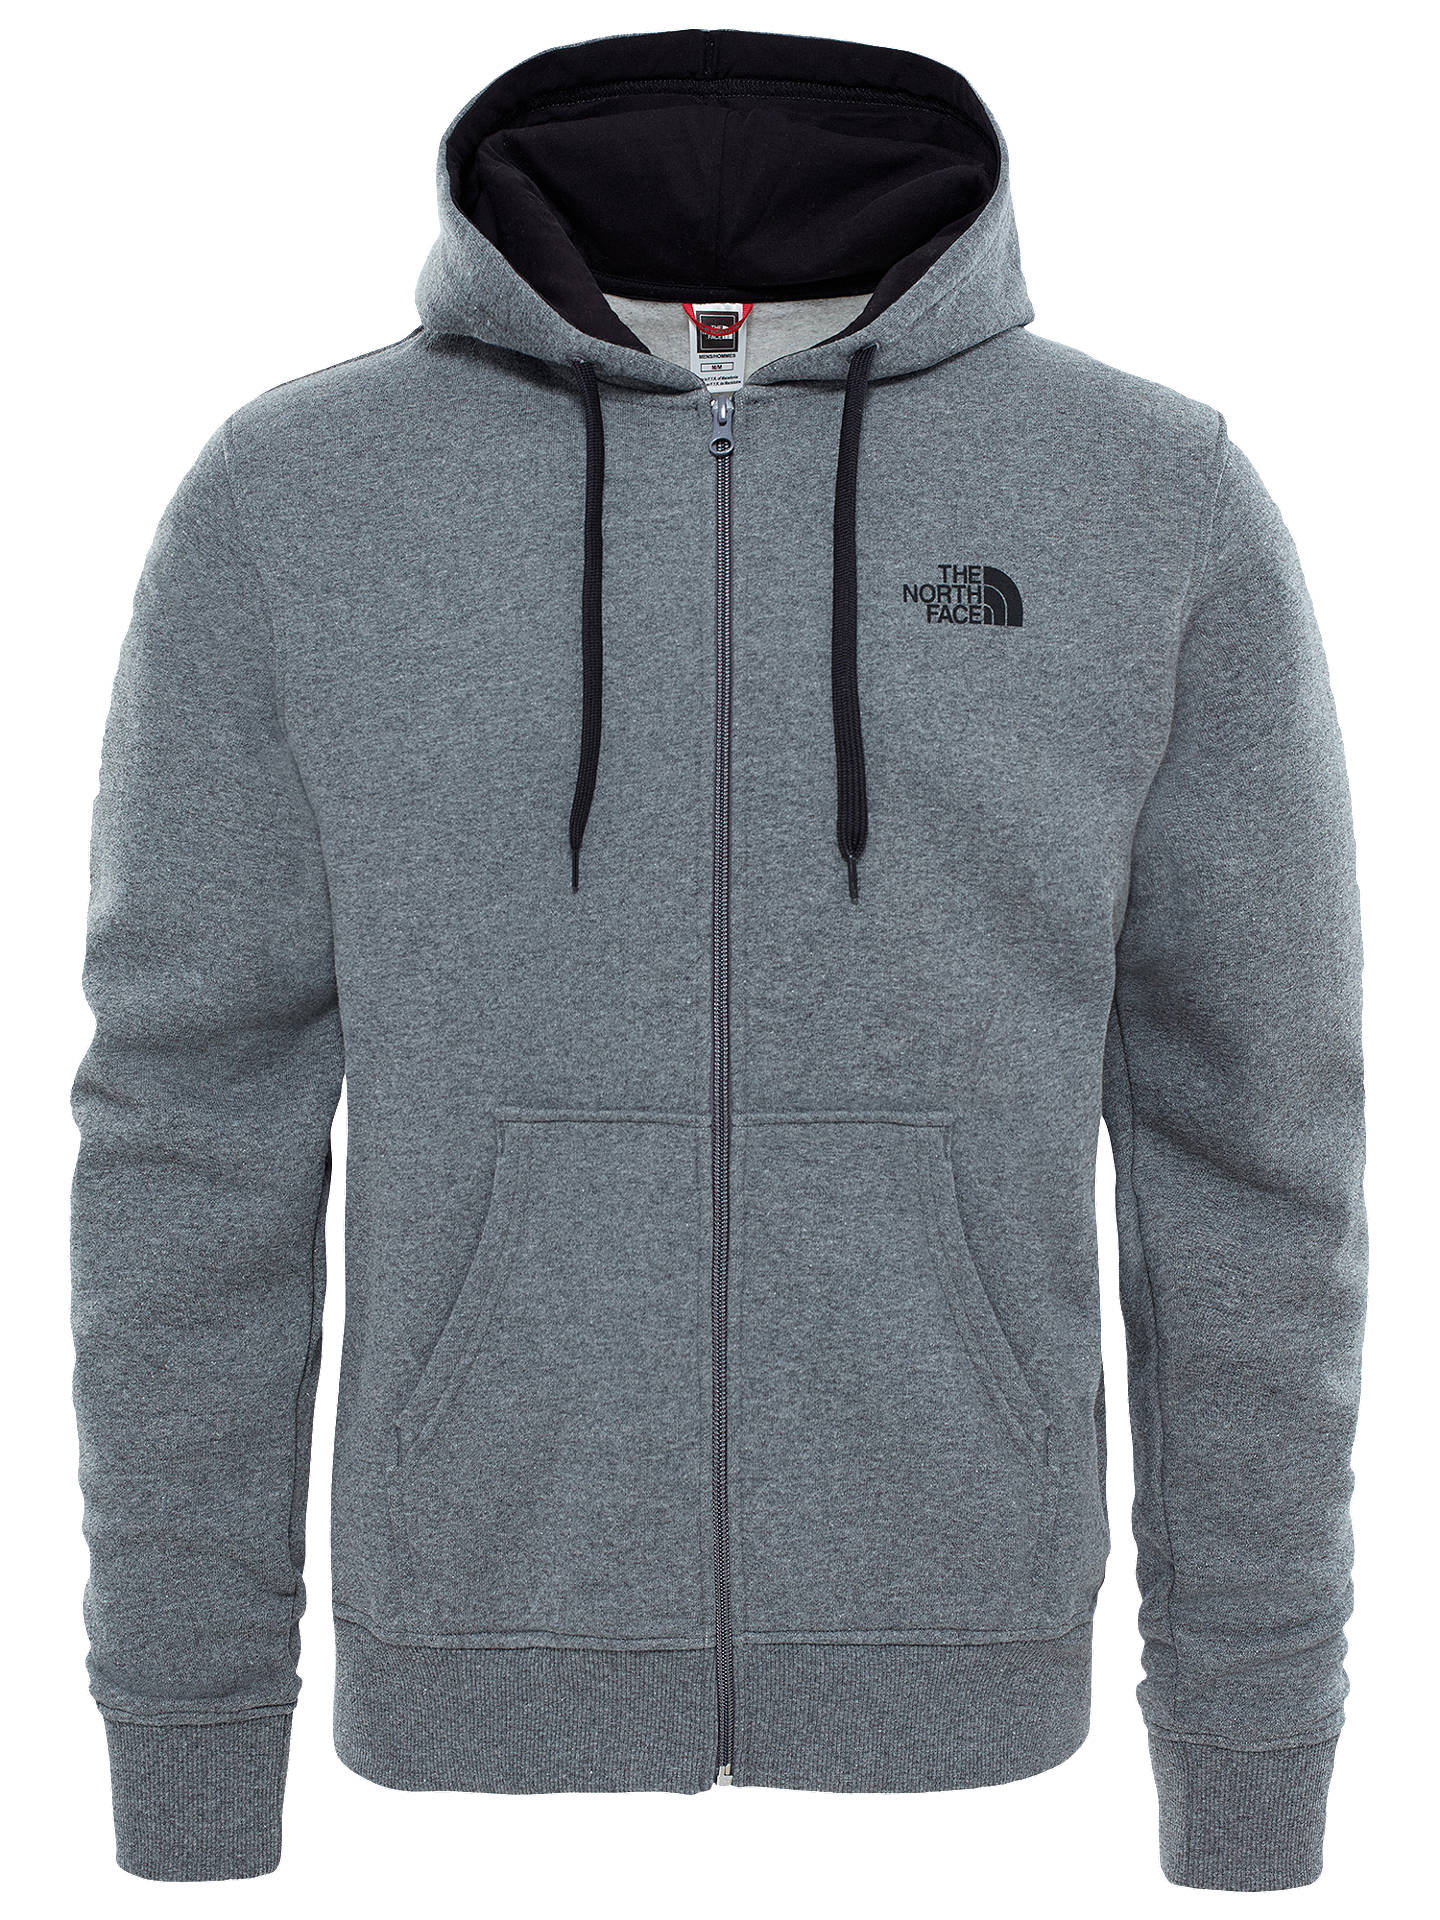 BuyThe North Face Open Gate Hoodie, Medium Grey Heather, S Online at johnlewis.com